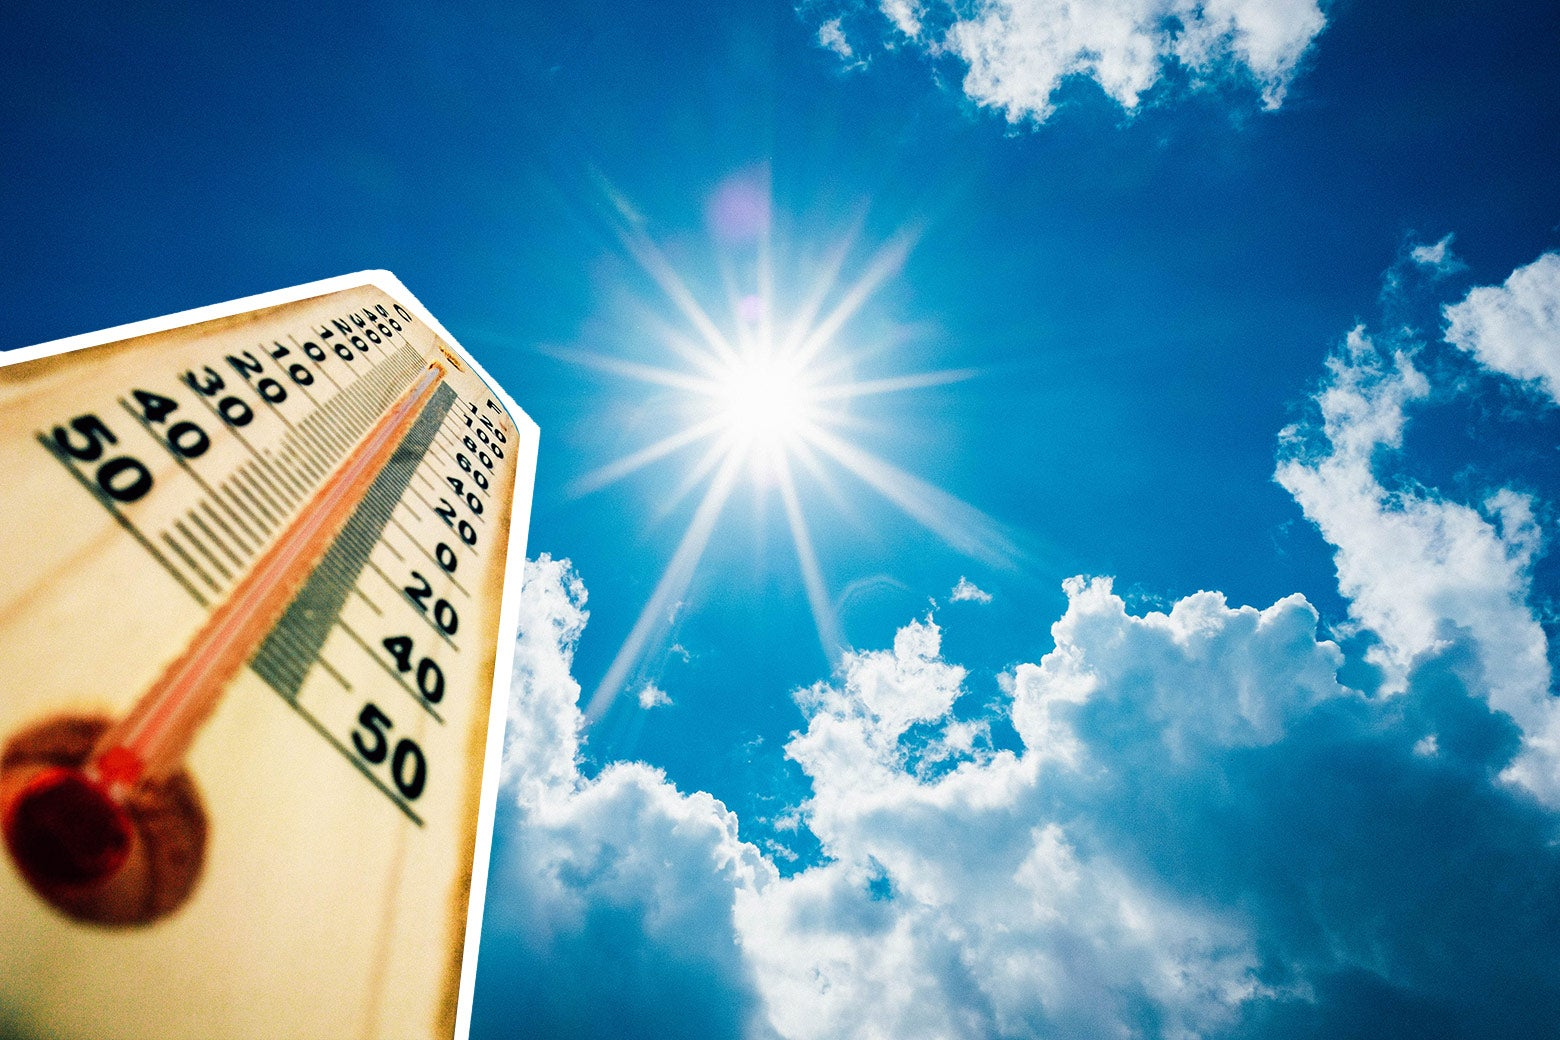 The mercury in a thermometer rises up under the beating sun.